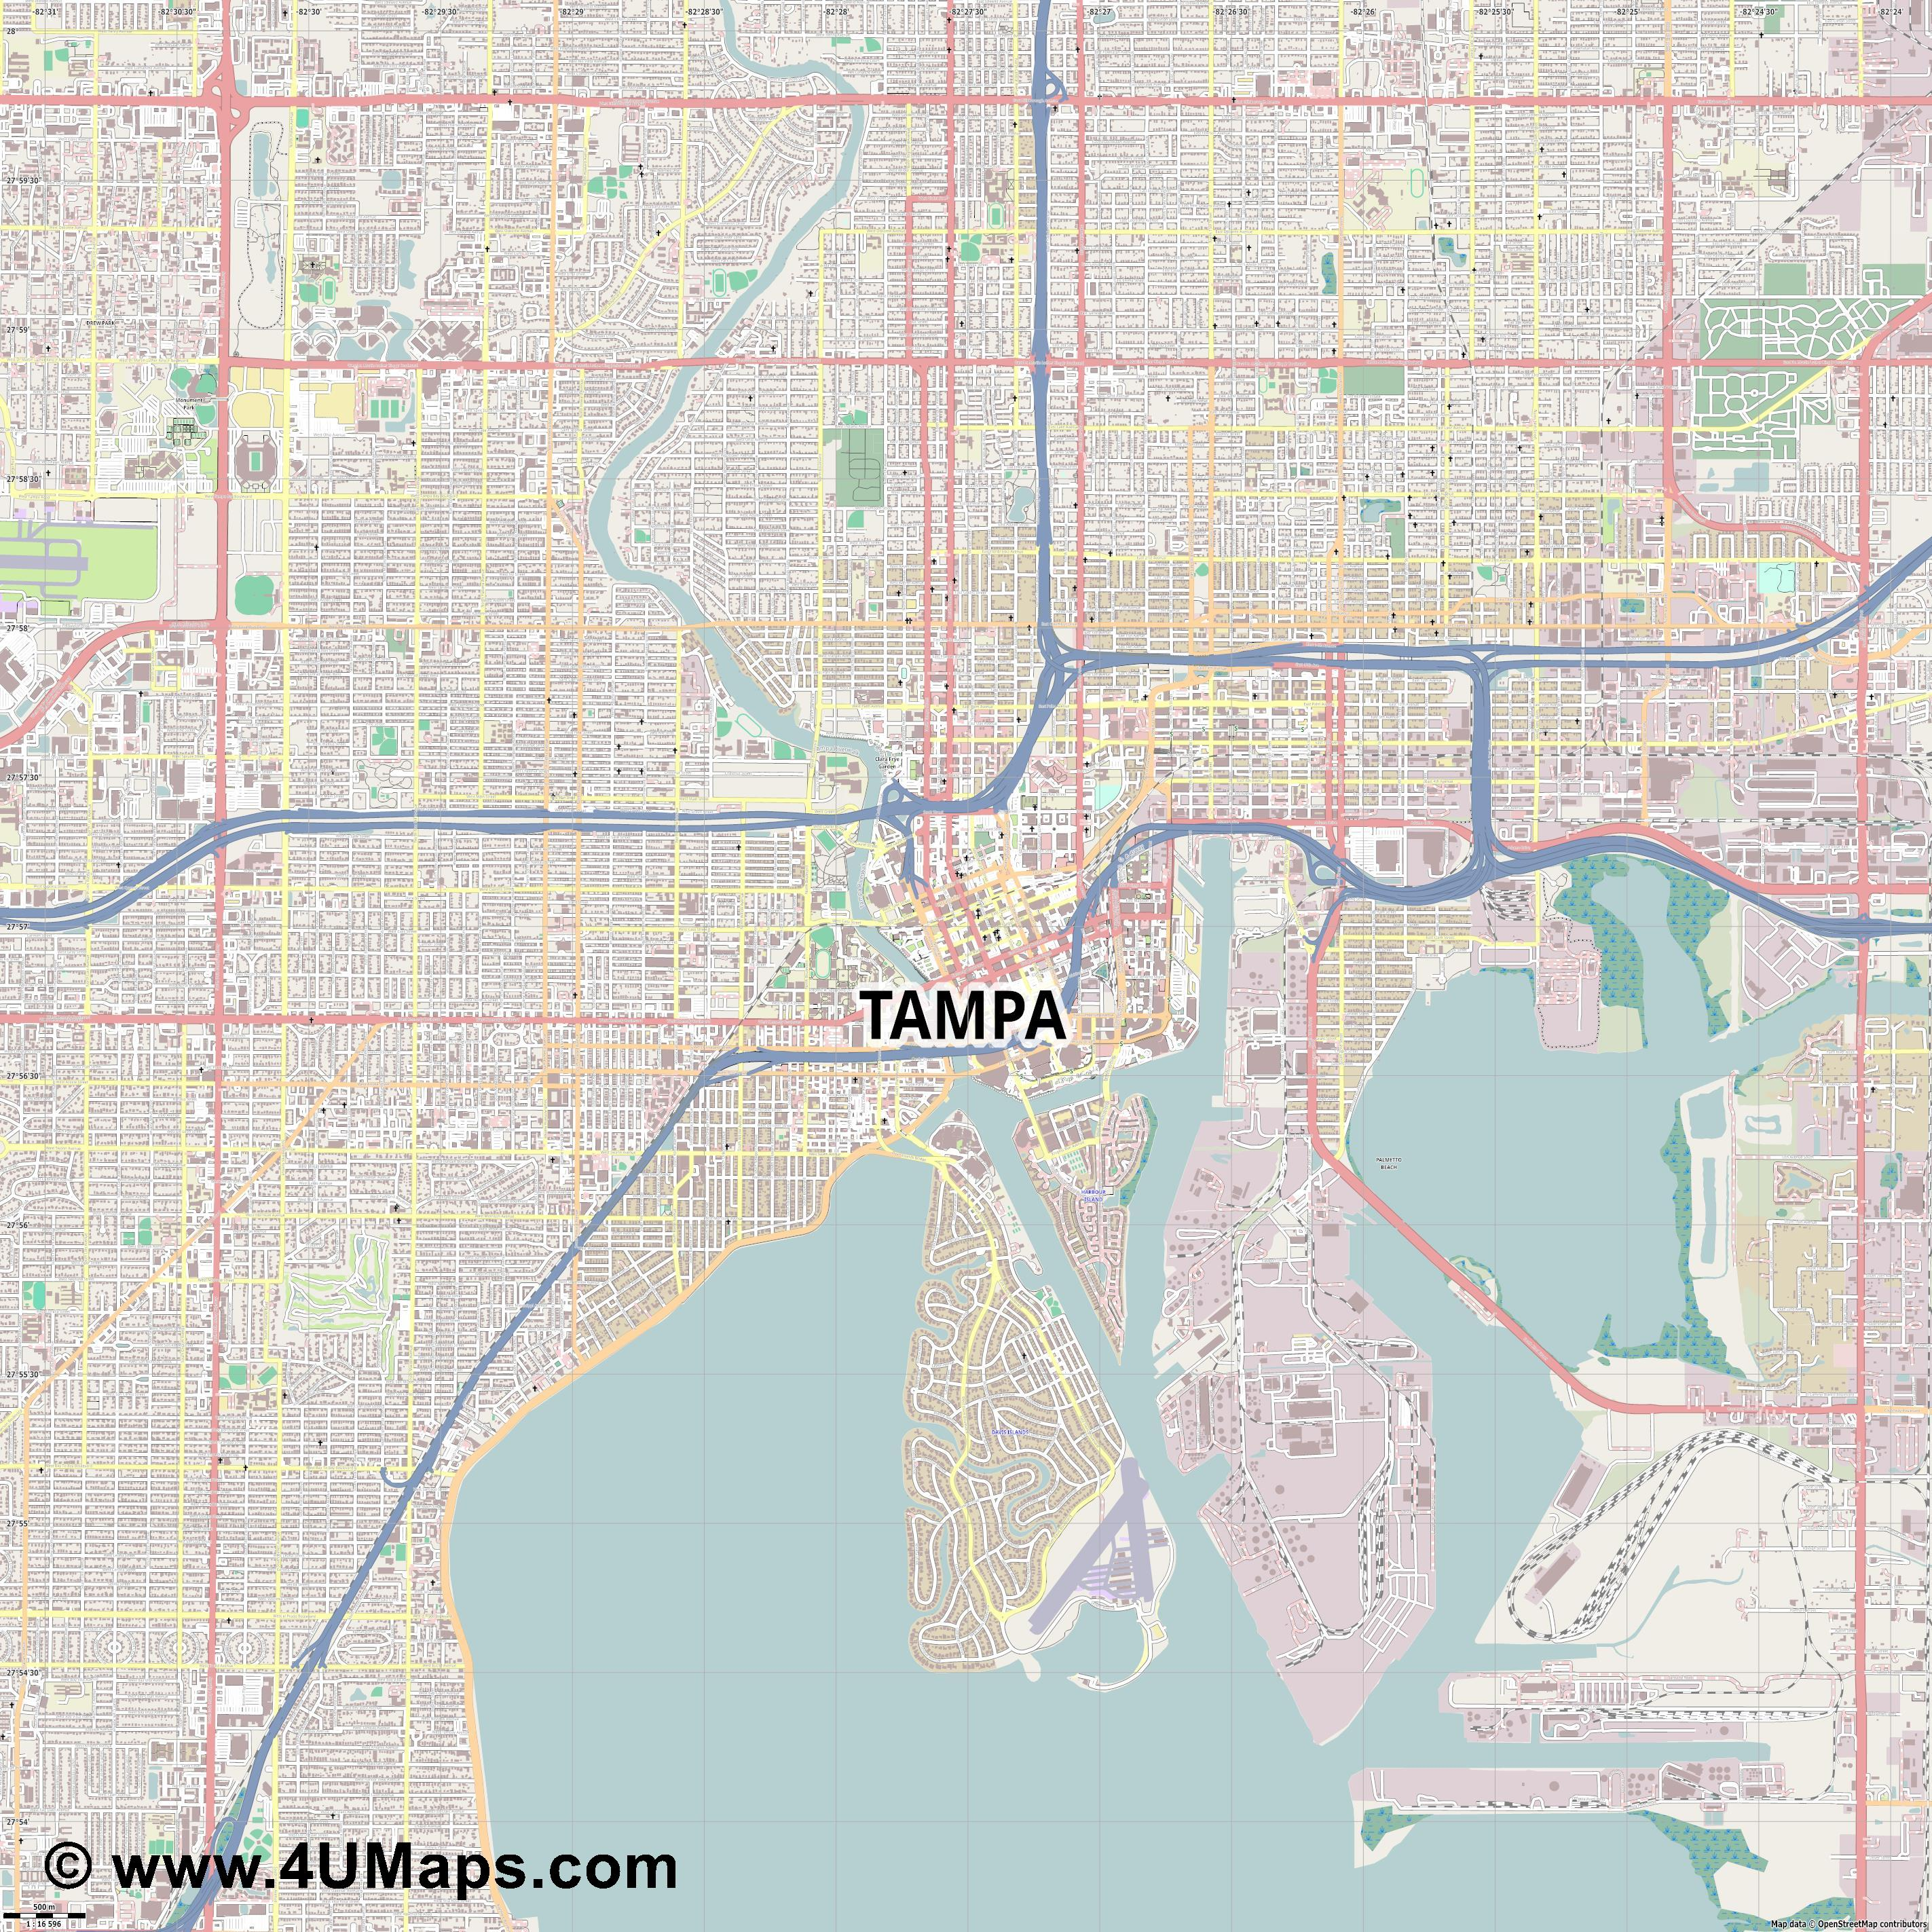 Tampa  jpg ultra high detail preview vector city map